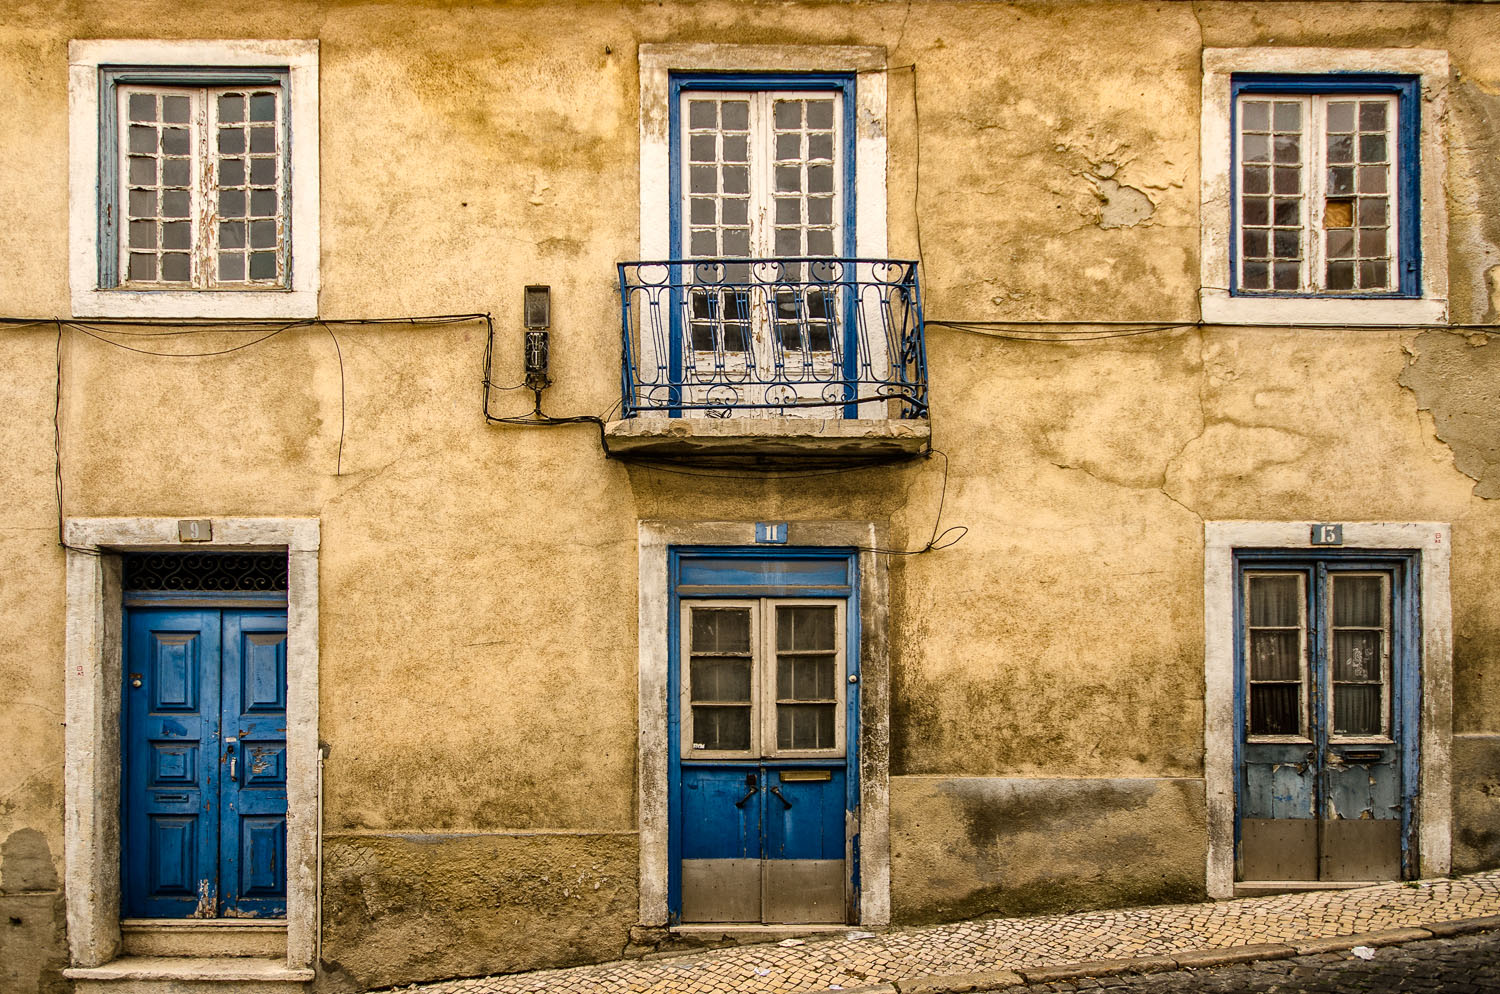 A yellow/golden wall with blue framed windows and blue doors - photo taken in Bairro Alto during a Lisbon photo tour...